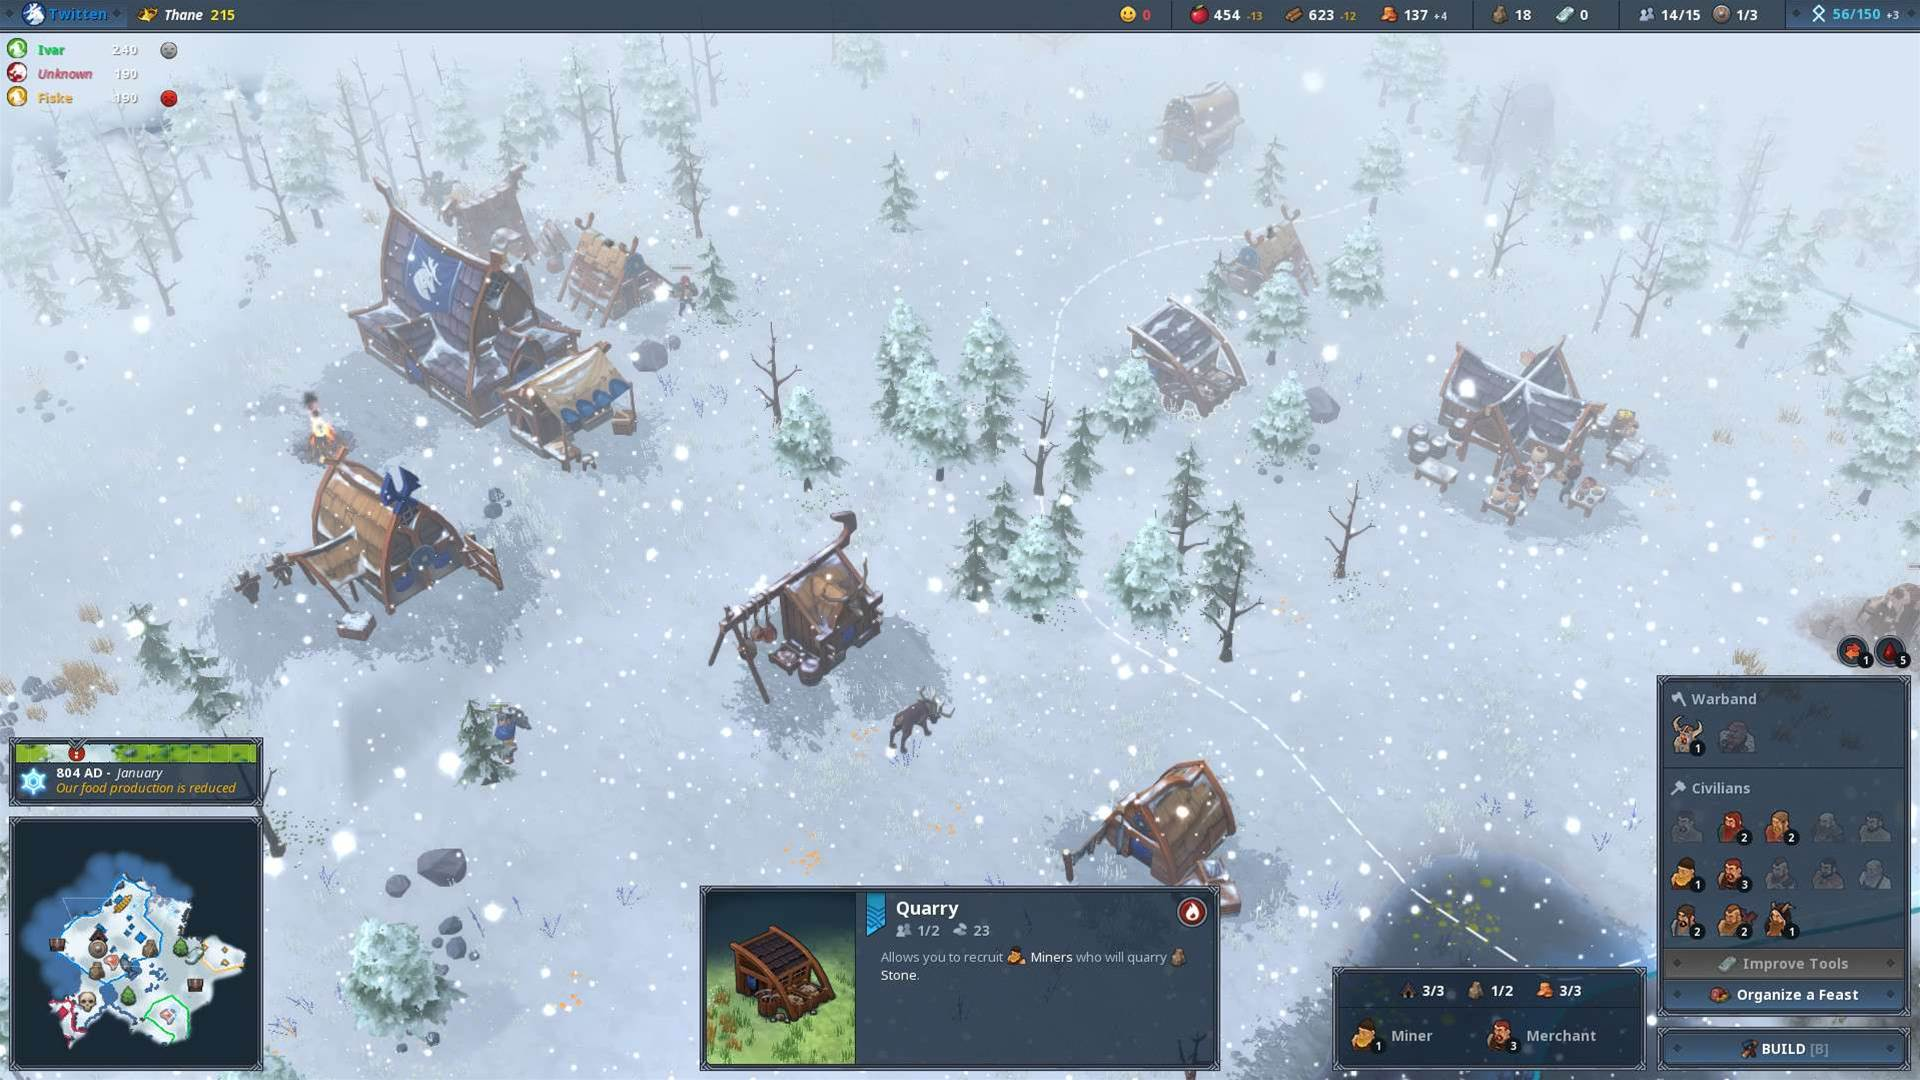 Frosty screenshots from Settlers-like Northgard